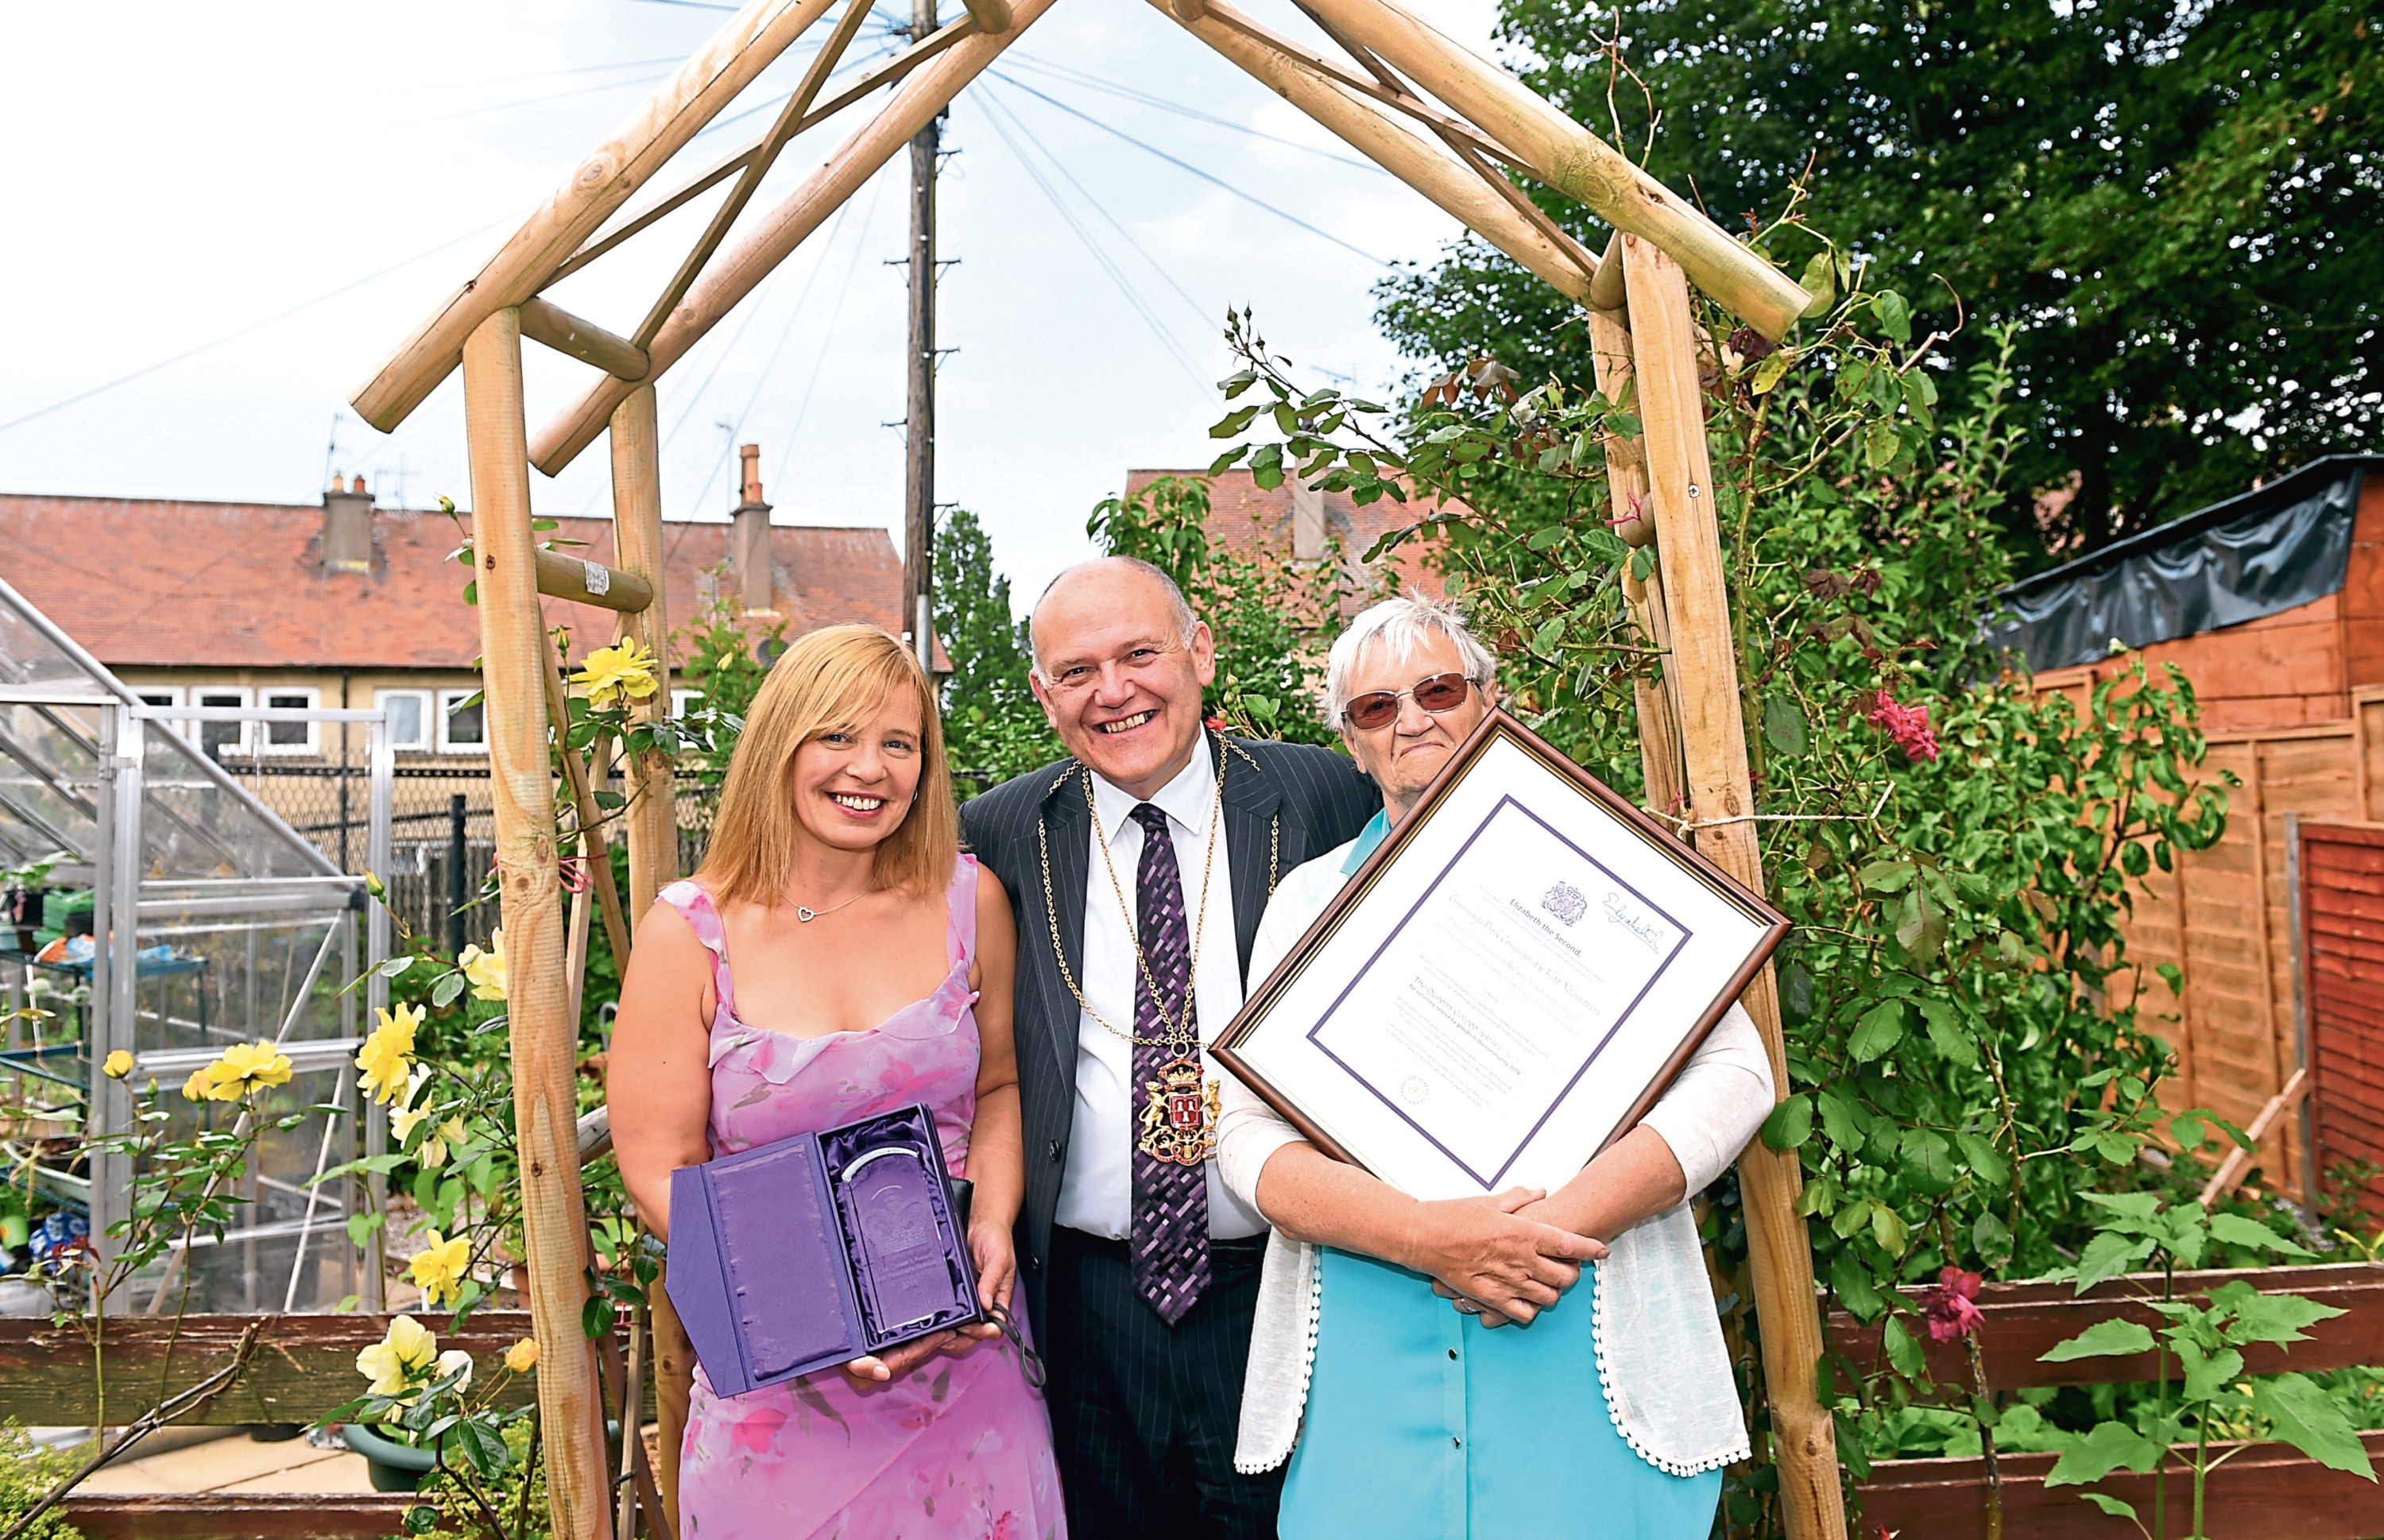 Cummings Park community flat has been awarded with a Queens Award, and will be presented with it at an event on 26th july. Pictured from left, Donna Sim, Development Worker, Lord Provost Barney Crockett and Pat Lawrence, Chairperson and gardener. 26/07/18 Picture by HEATHER FOWLIE